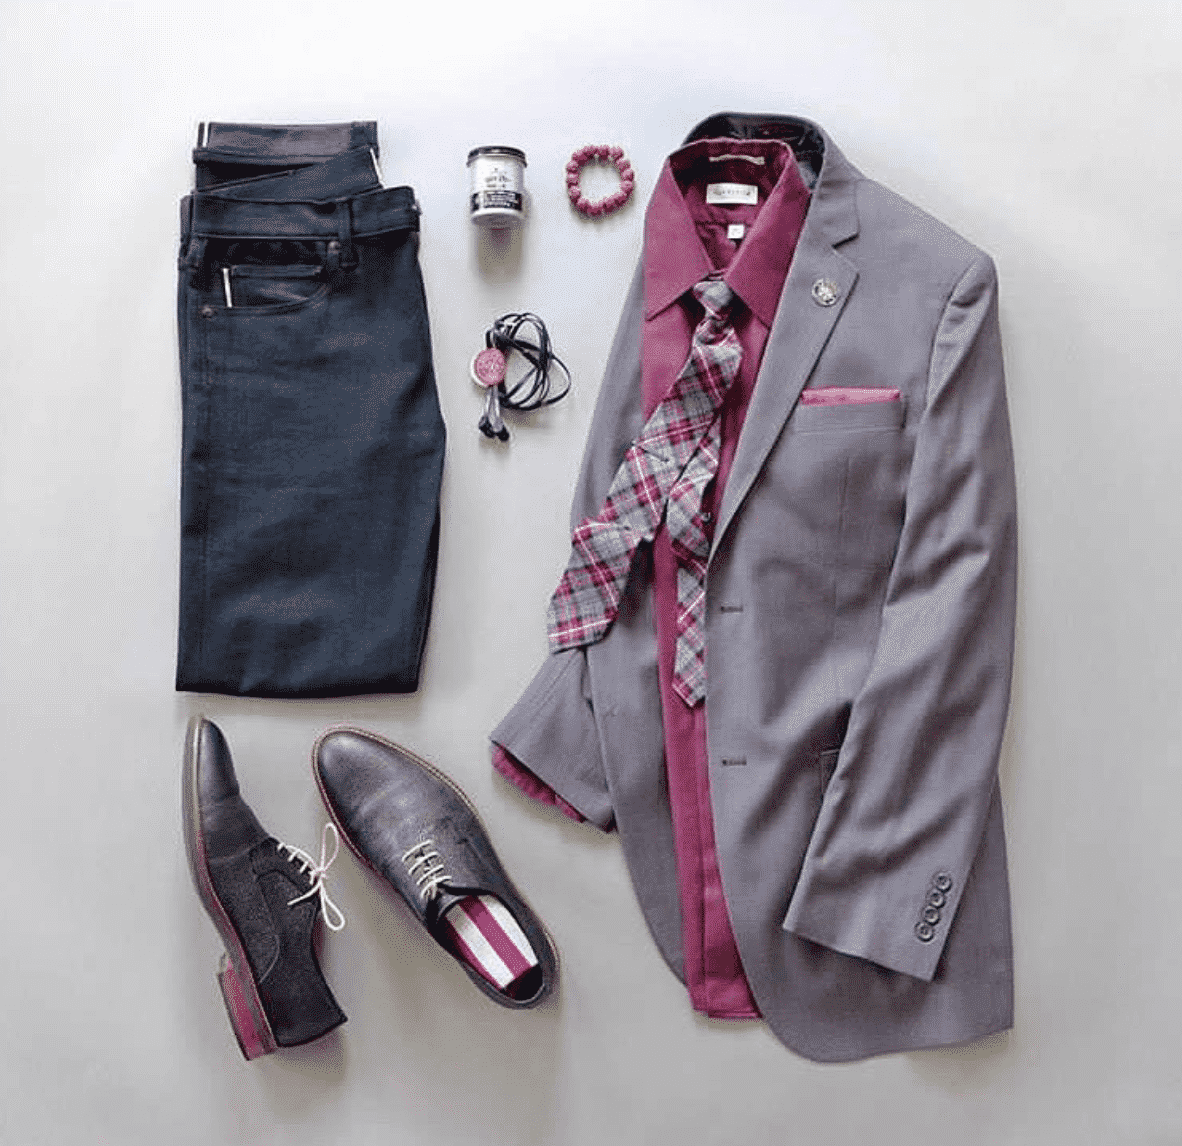 Men-business-casual-wear Men's Business Casual Outfits-27 Ideas to Dress Business Casual